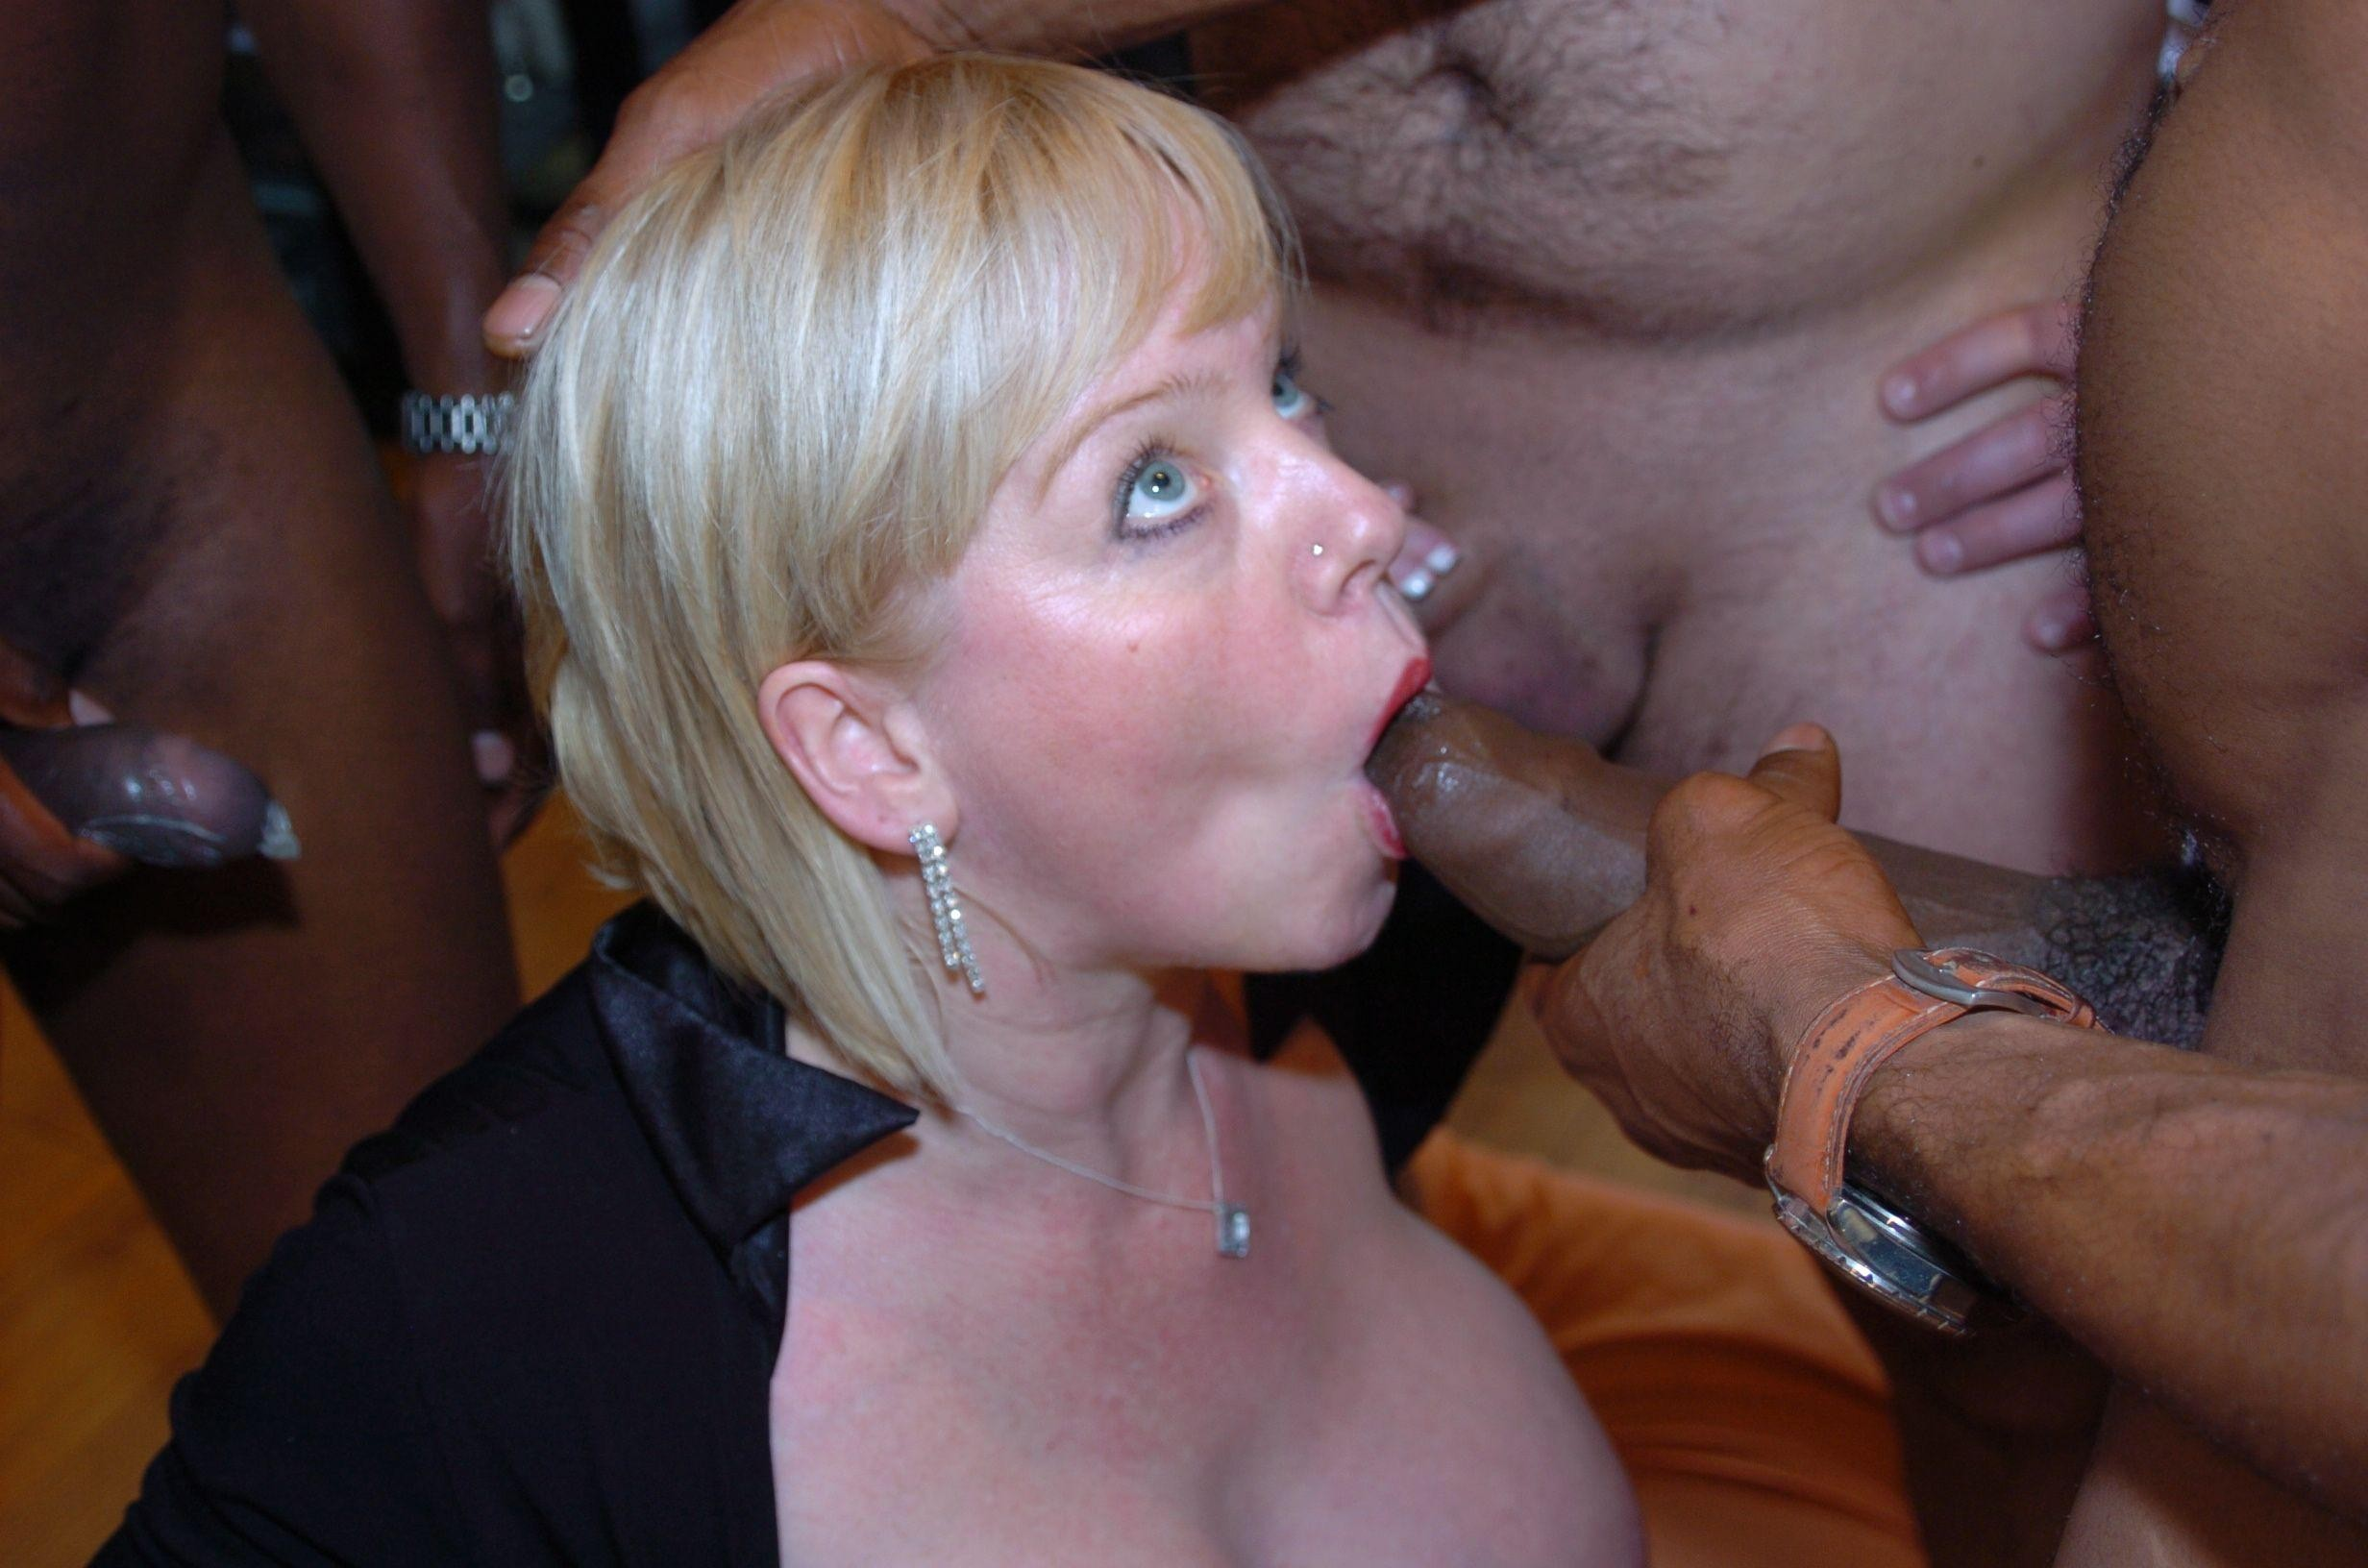 18 cock in tiny mouth